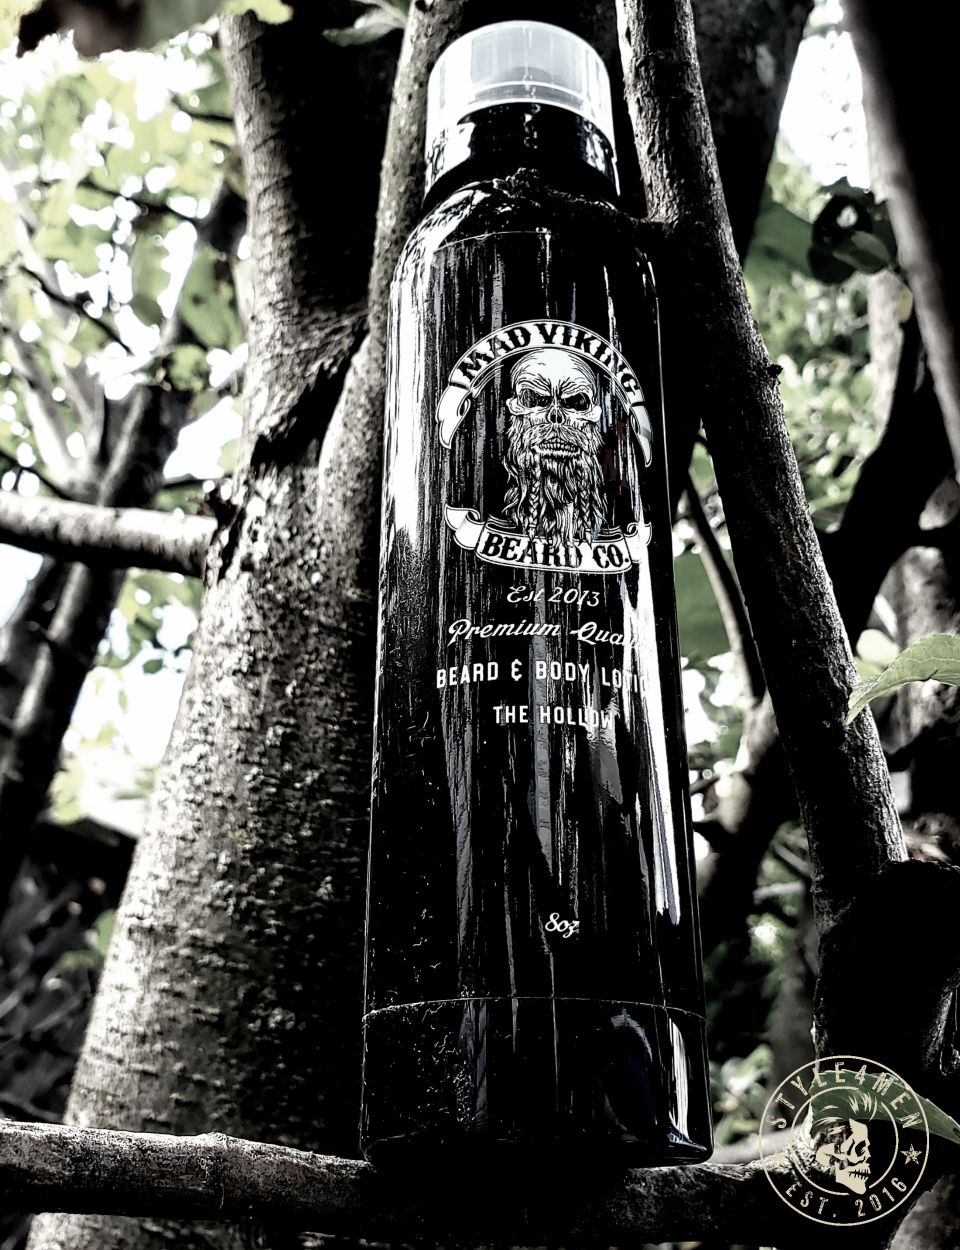 Mad Viking Beard Lotion – Forget the beard balm, forget the oil!